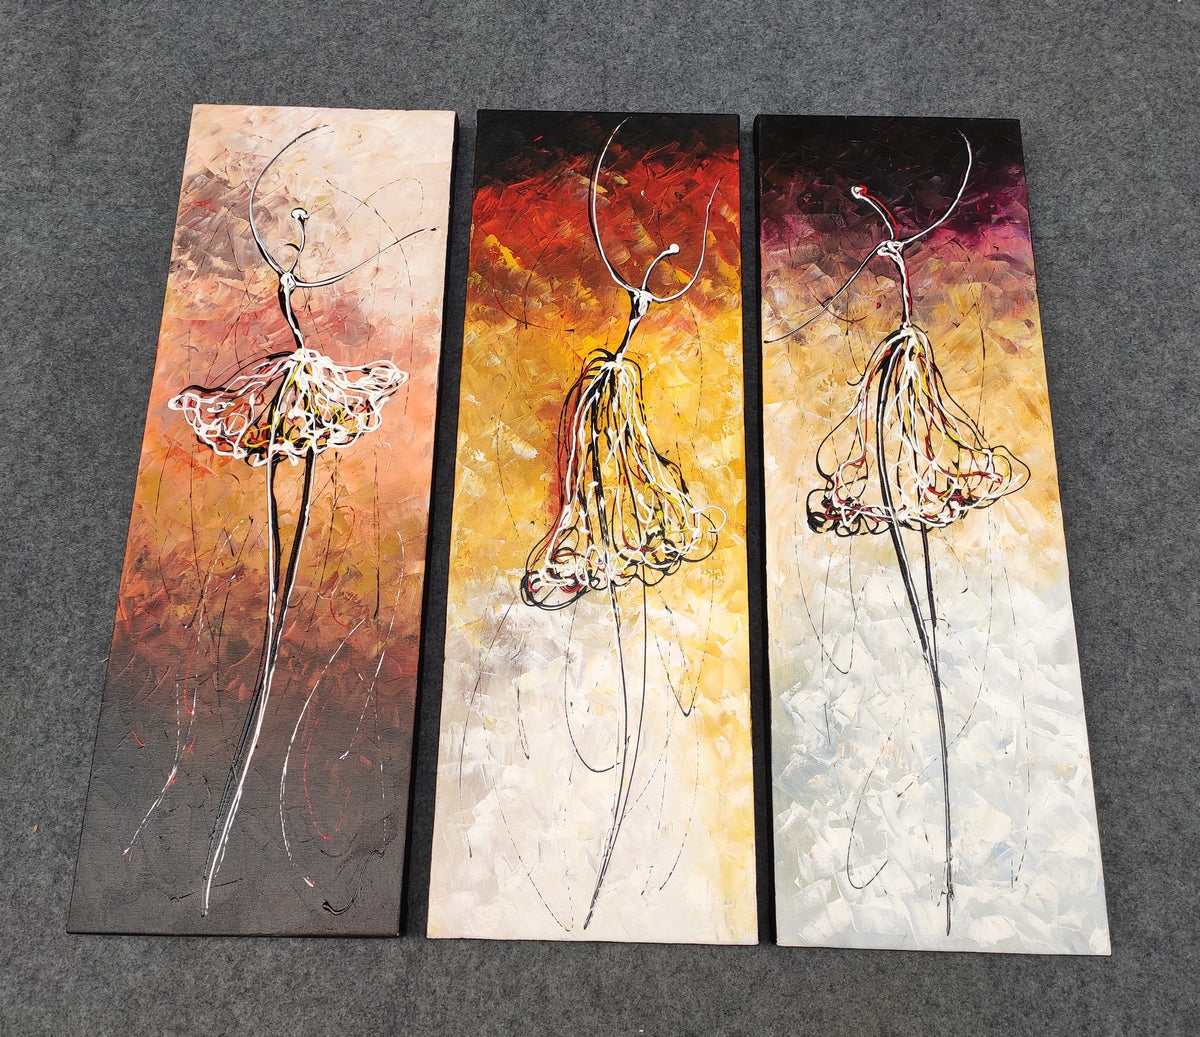 Hand Painted Wall Art, Living Room Wall Art, Buy Painting Online, Abstract Painting for Sale